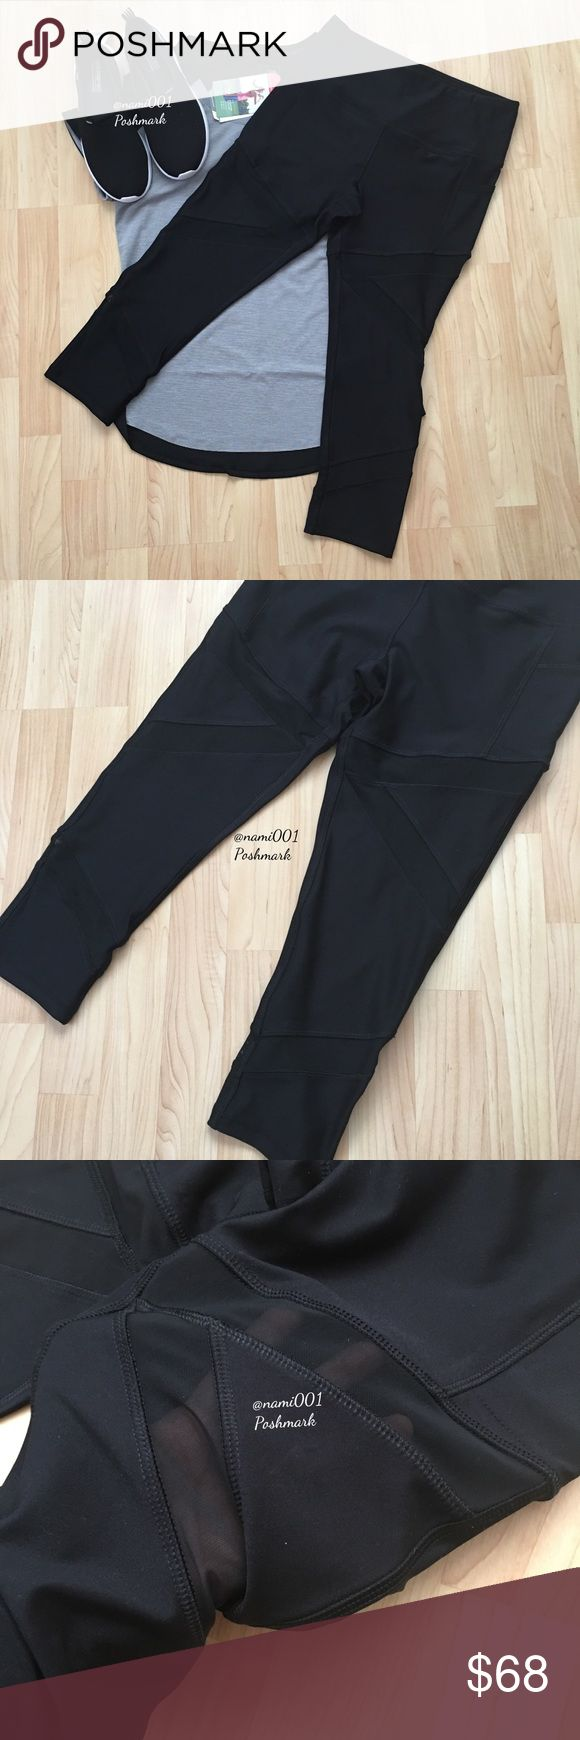 """Mesh See Thru Workout Athletic Capri Legging Pants The hottest trend to hit the """"casual"""" runway  has a little bit of sass & sexy. These chic and trendy athletic capri leggings by X by Gottex will be your go to pants for style and comfort whether it's an active day out or getting your workout on. Front has 2 mesh panels on the thigh that connect in a V. There's a mesh panel on the bottom that connects to the back. Made of 88% polyester & 12% spandex. Measures: 13"""" waist 20"""" inseam, 8.5"""" rise…"""